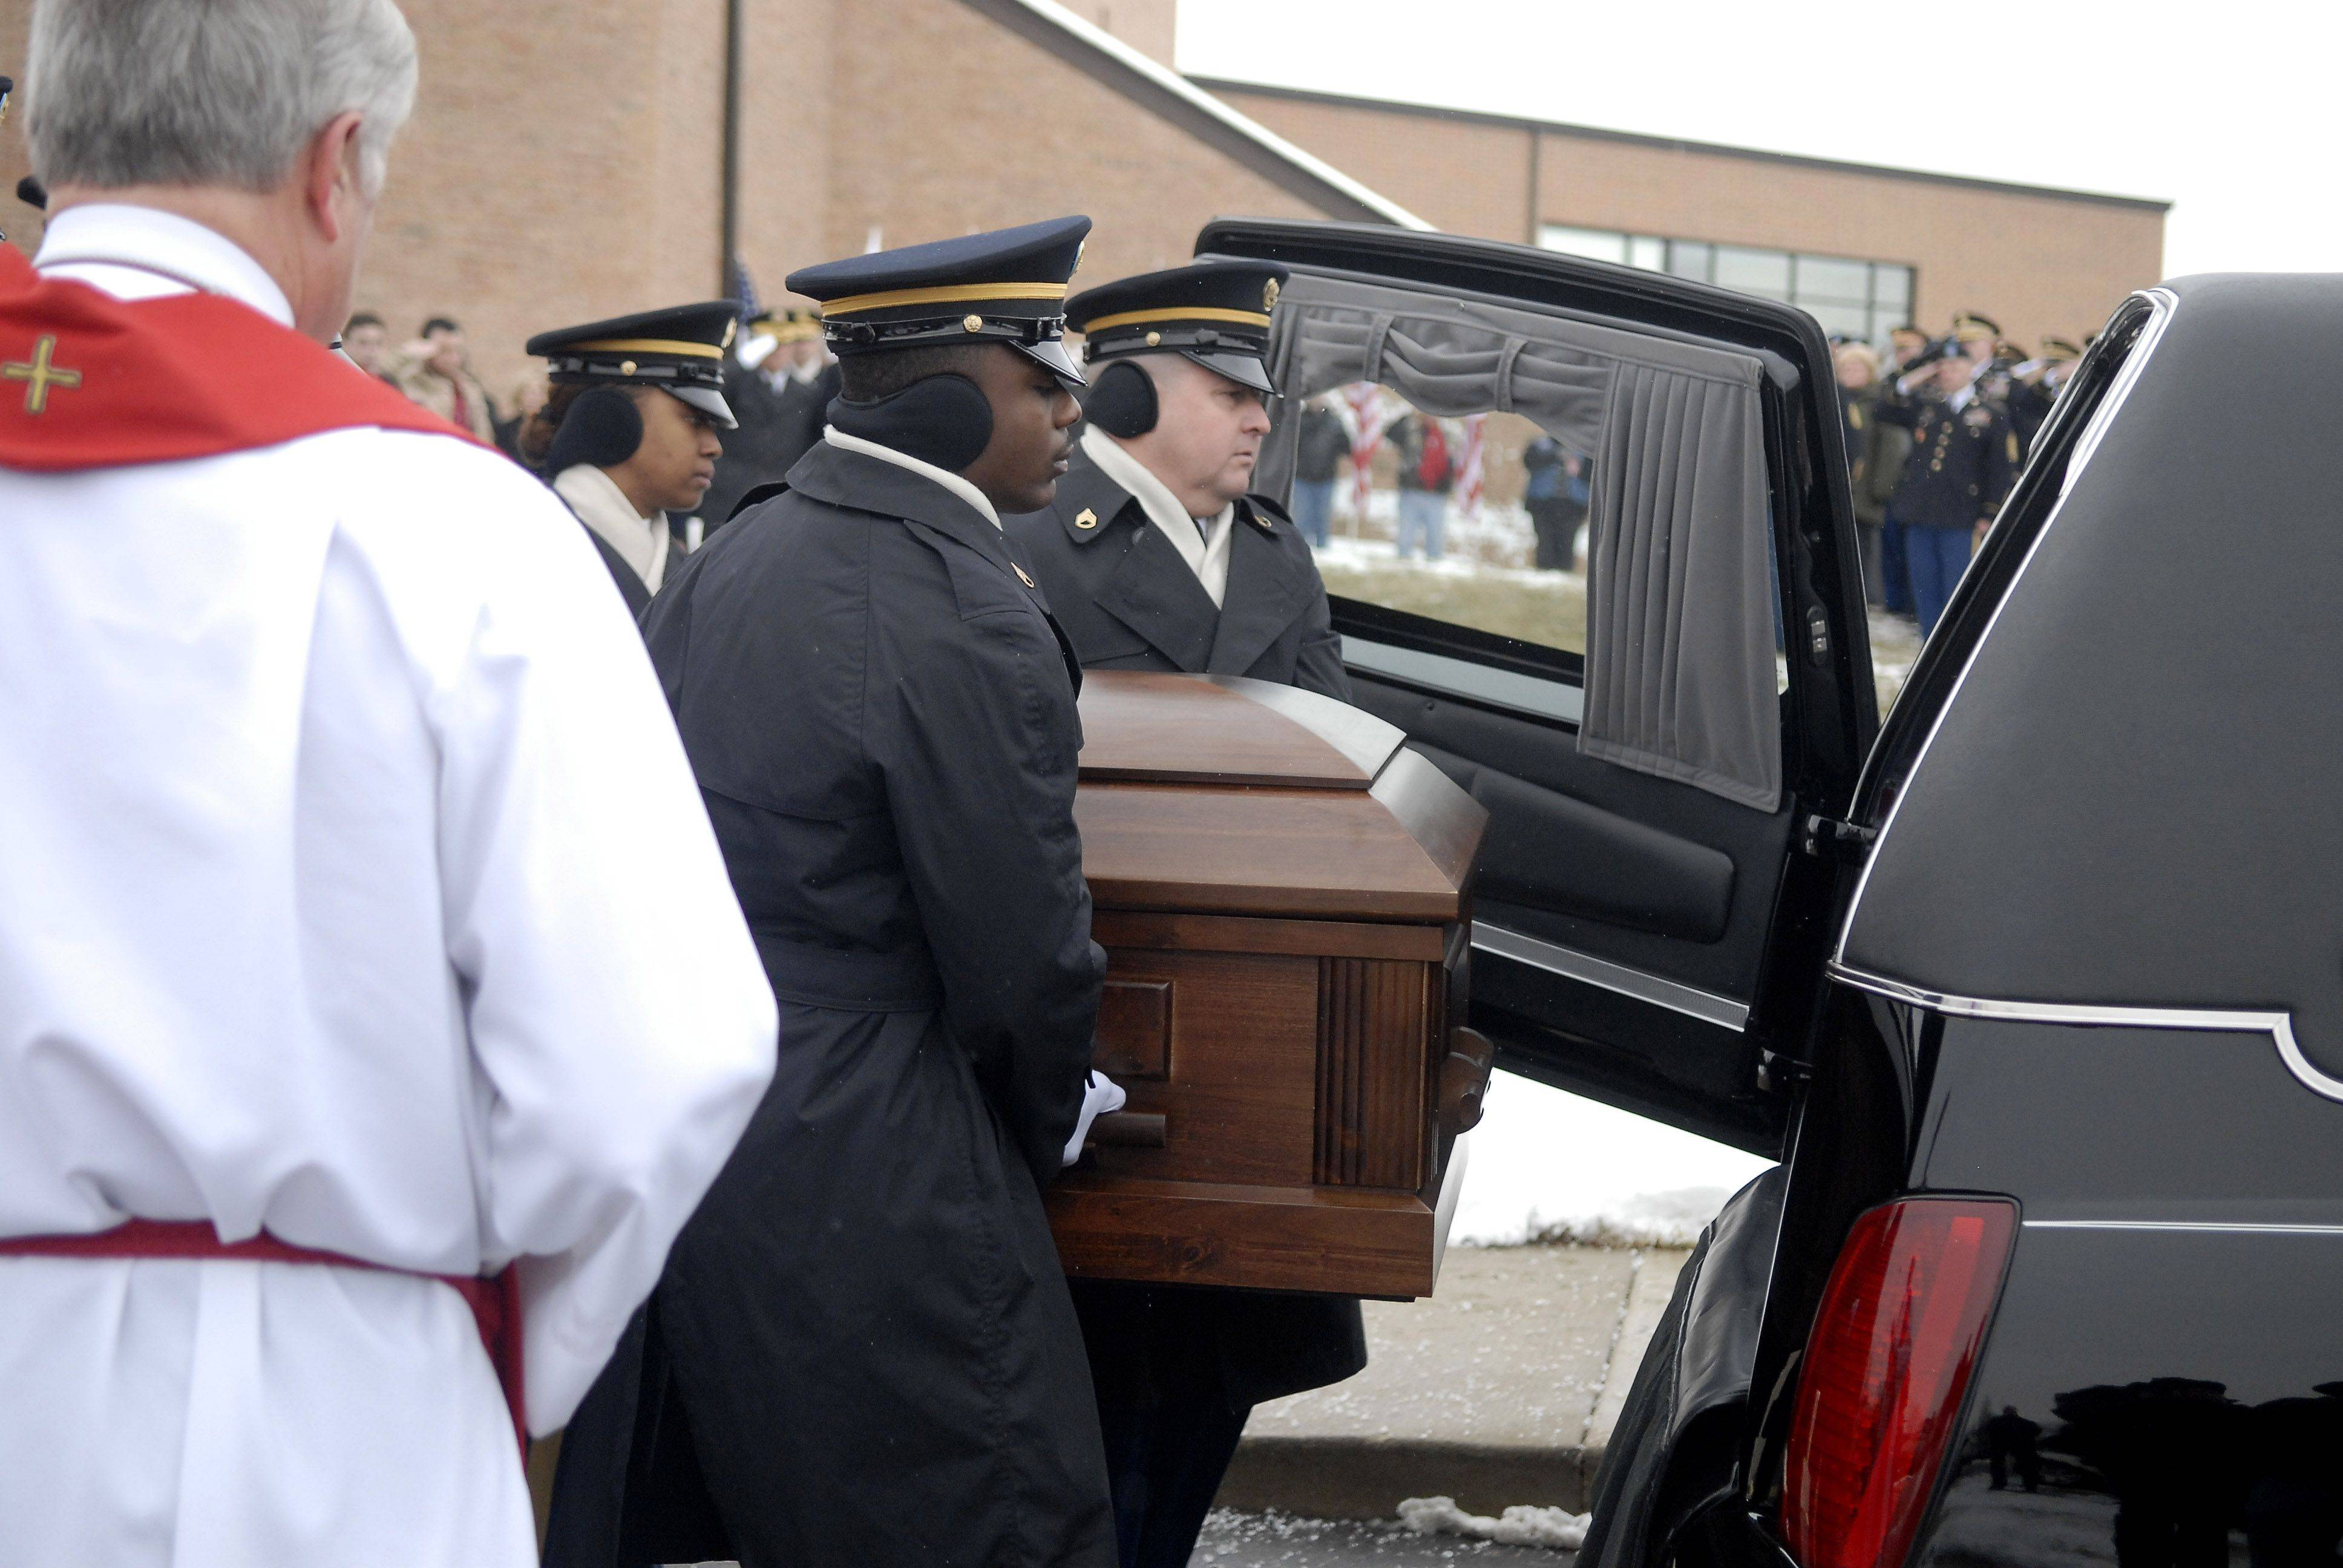 Staff Sergeant Arma Wright, left, and Staff Sergeant Jeffrey Hawley lead the Indiana National Honor Guard Ceremonial Unit in placing the casket of Spc. Christopher A. Patterson into the hearse after his funeral and full military honors at Immanuel Lutheran Church in Batavia on Saturday, January 21.